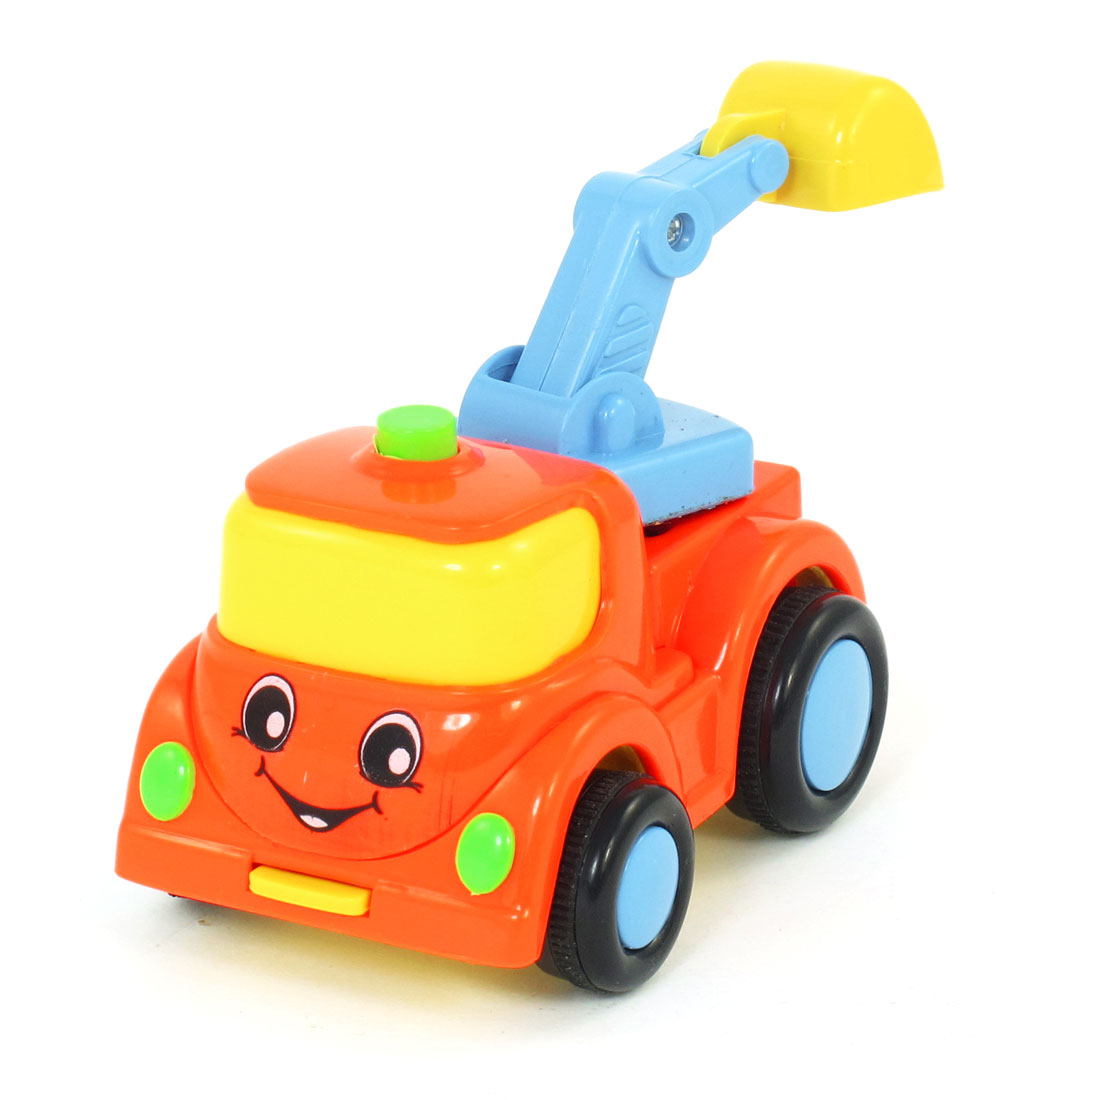 Multicolor Plastic Excavator Digger Truck Car Model Toy for Child